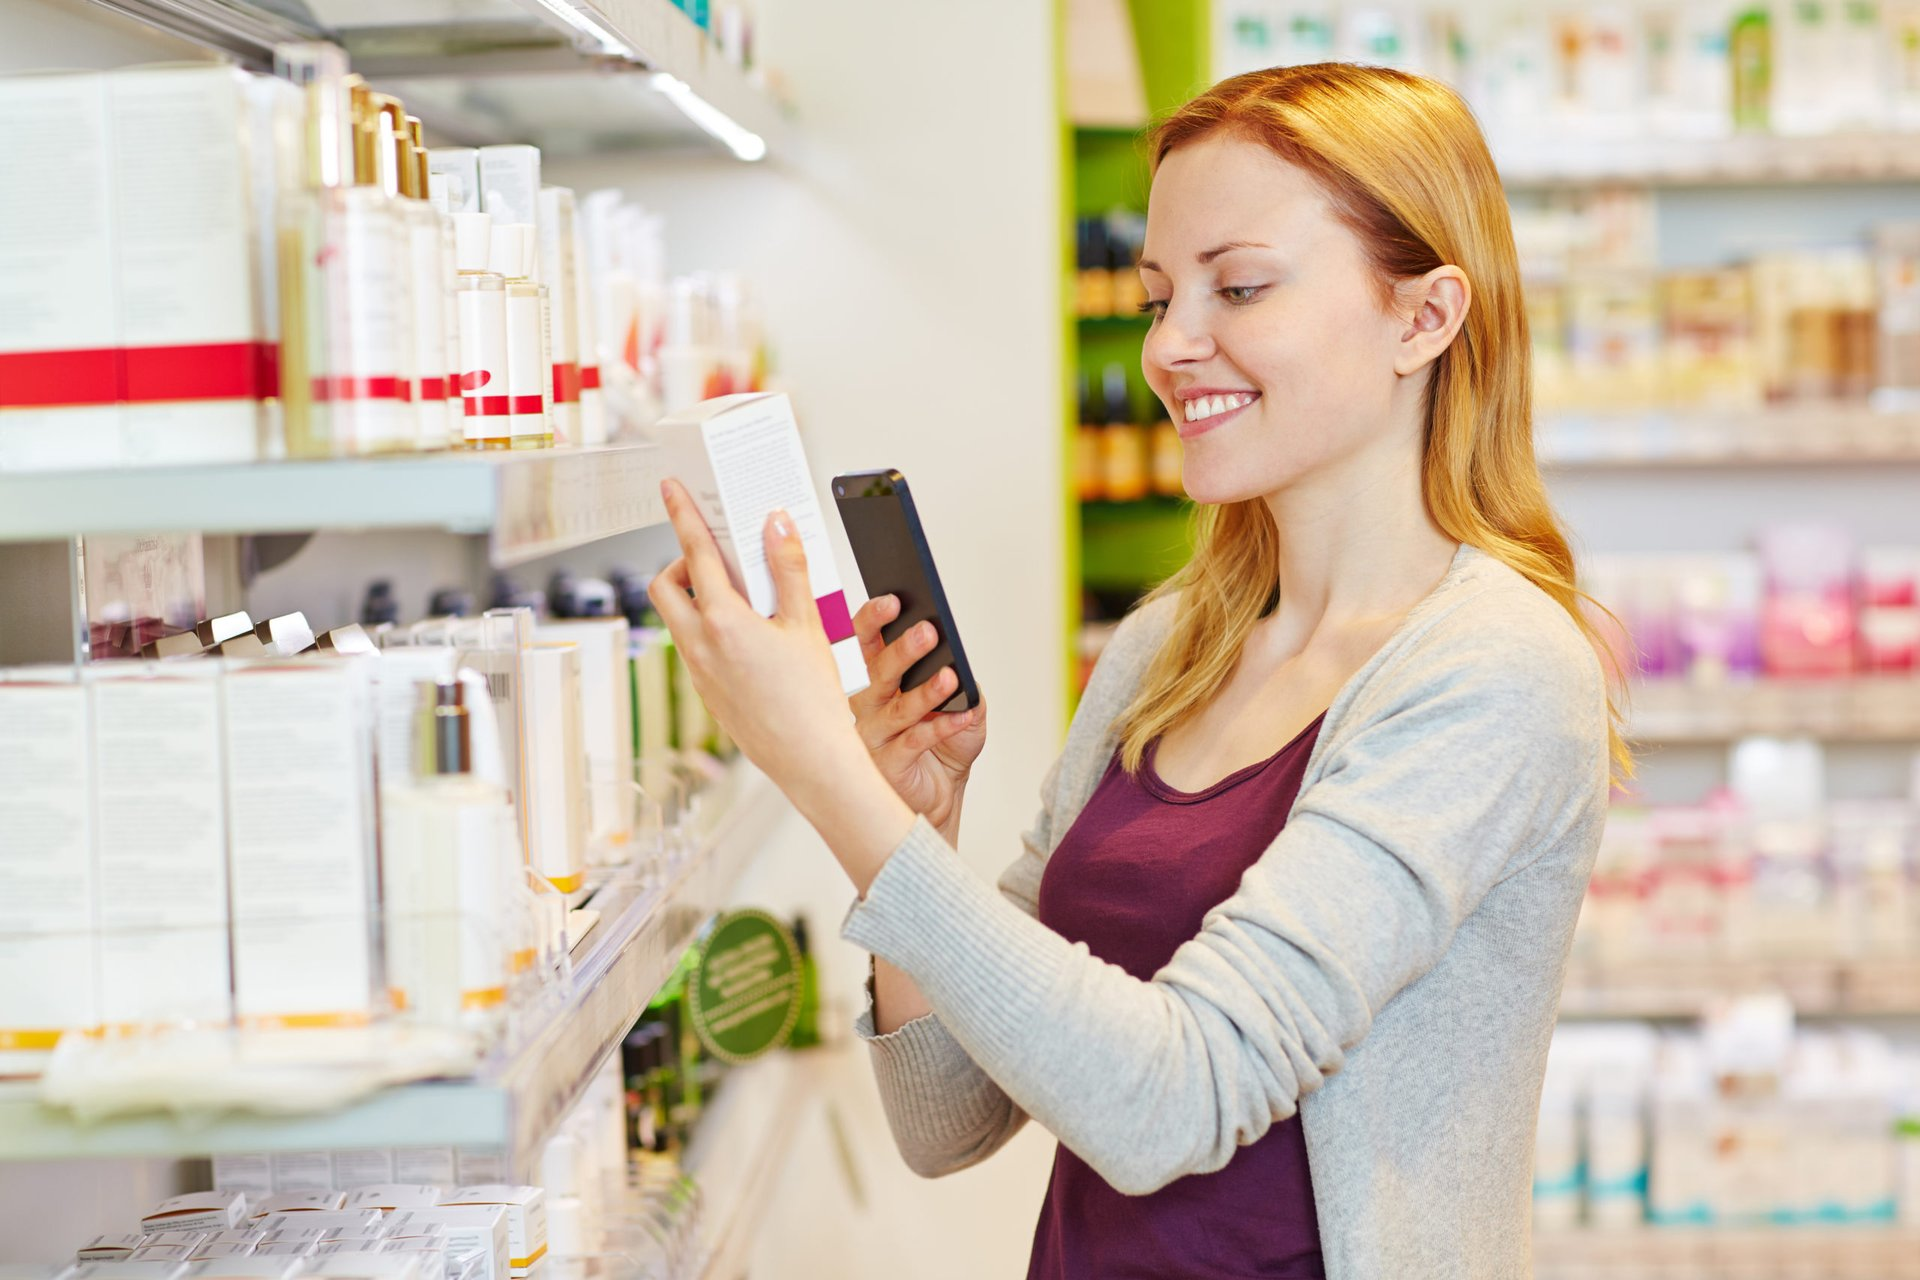 drugstore shopper comparing prices on her phone